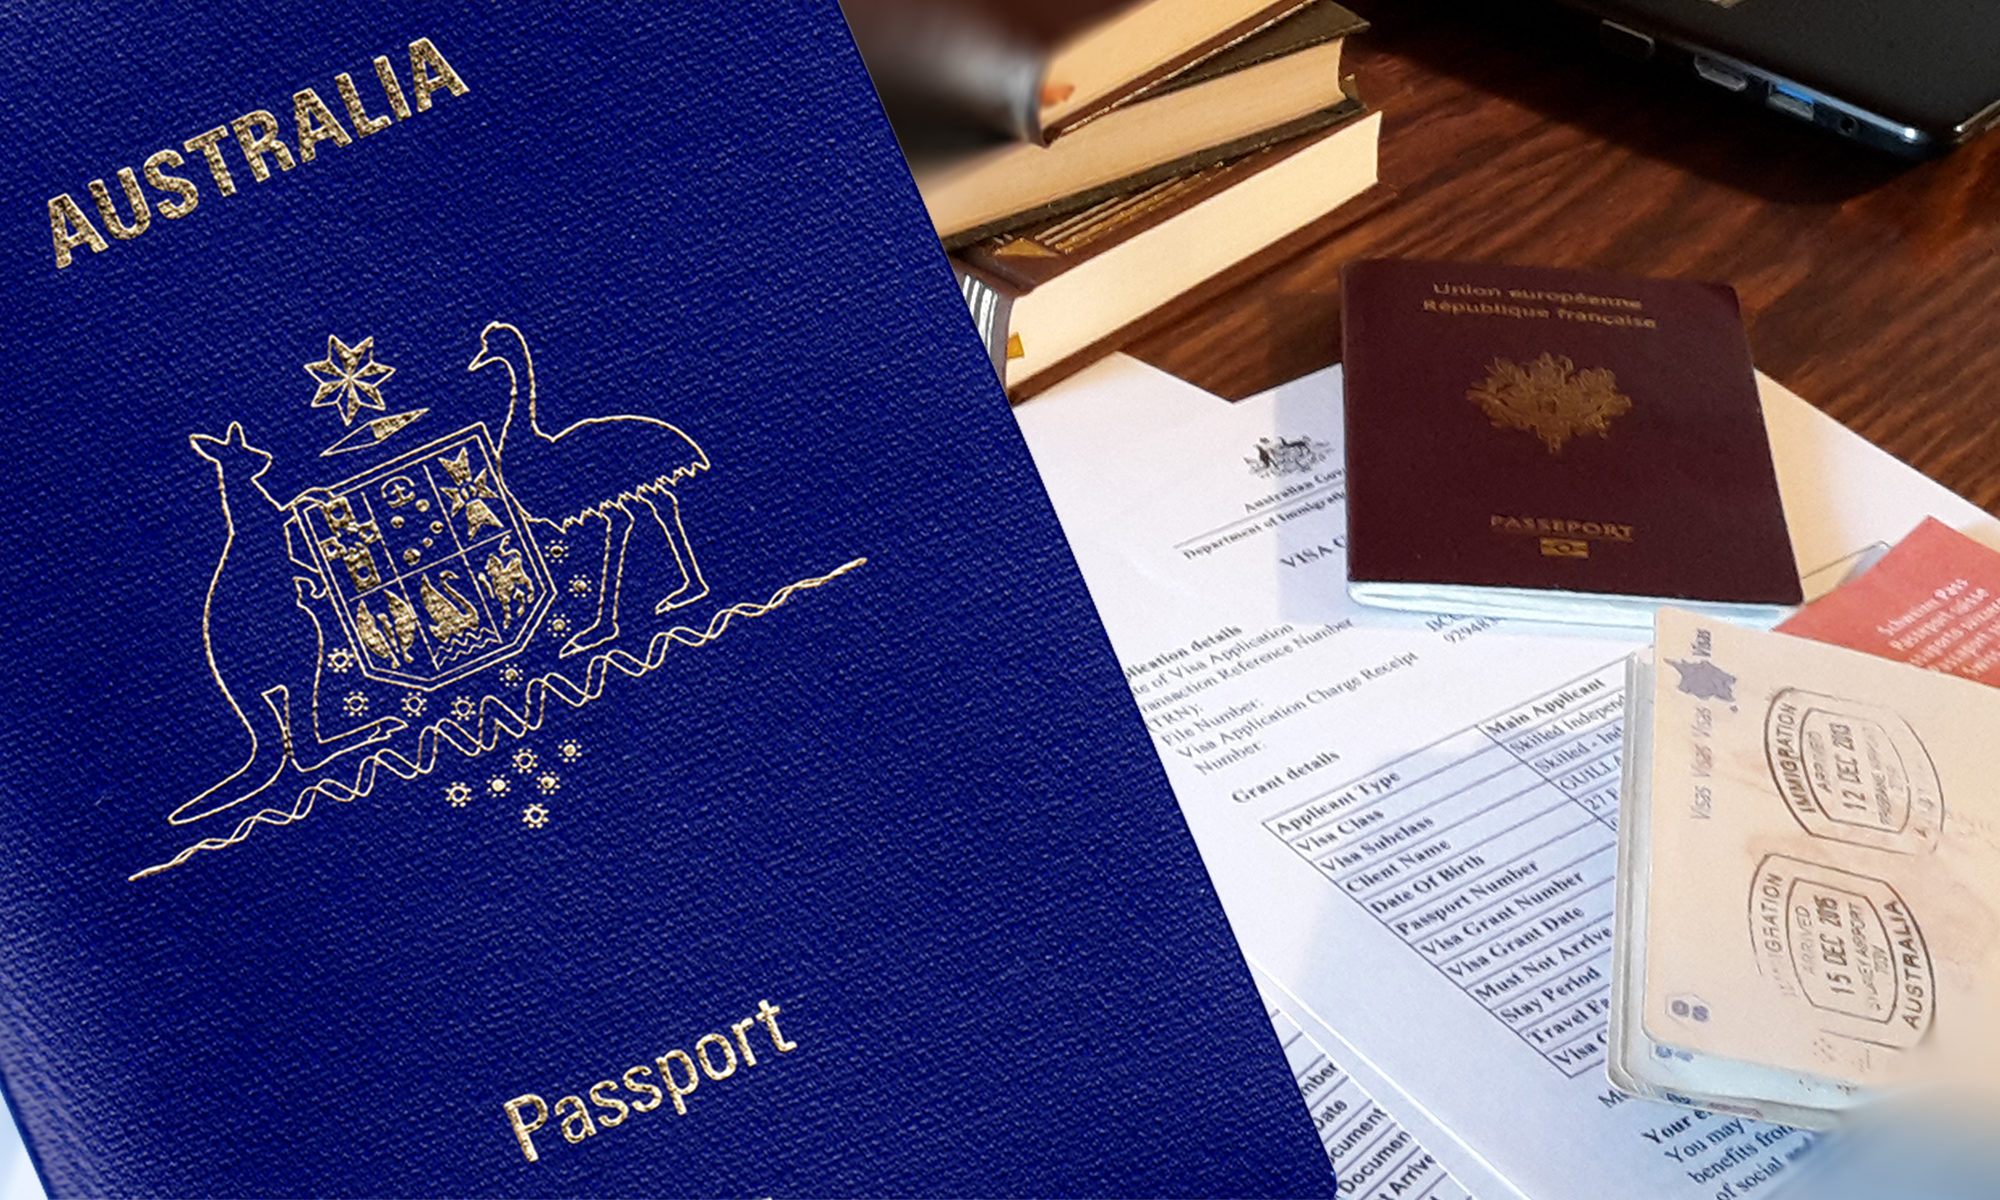 GB Australian Migration Law